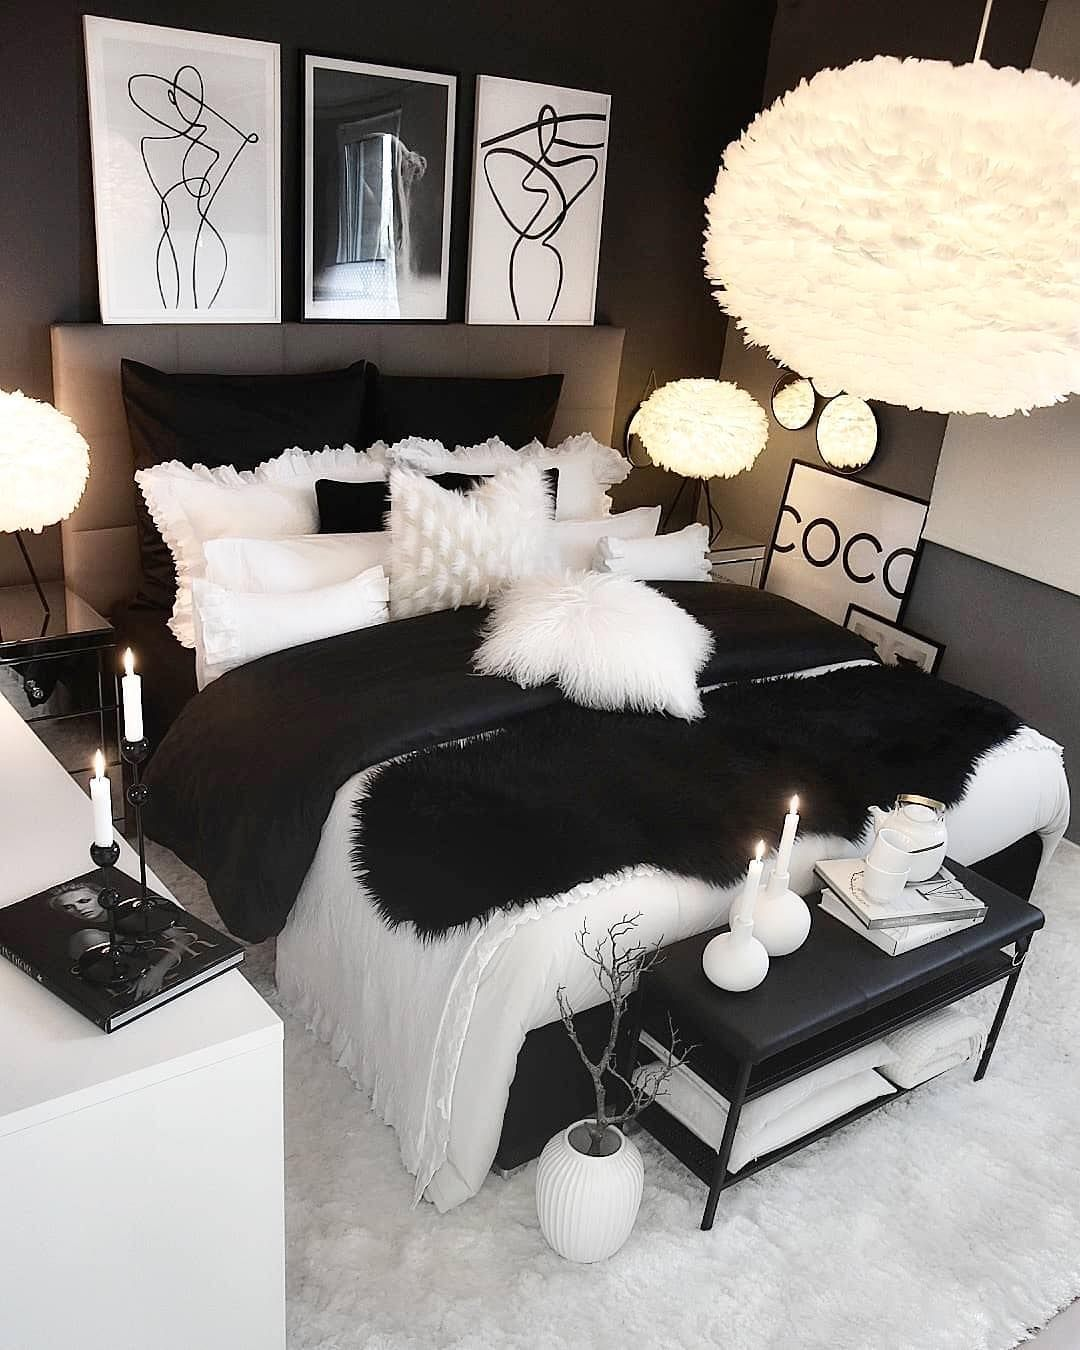 Black White Room Goal We Want All Like A Room Like This We Hope You Have A Nice Weekend Su Room Ideas Bedroom Master Bedrooms Decor Room Decor Bedroom